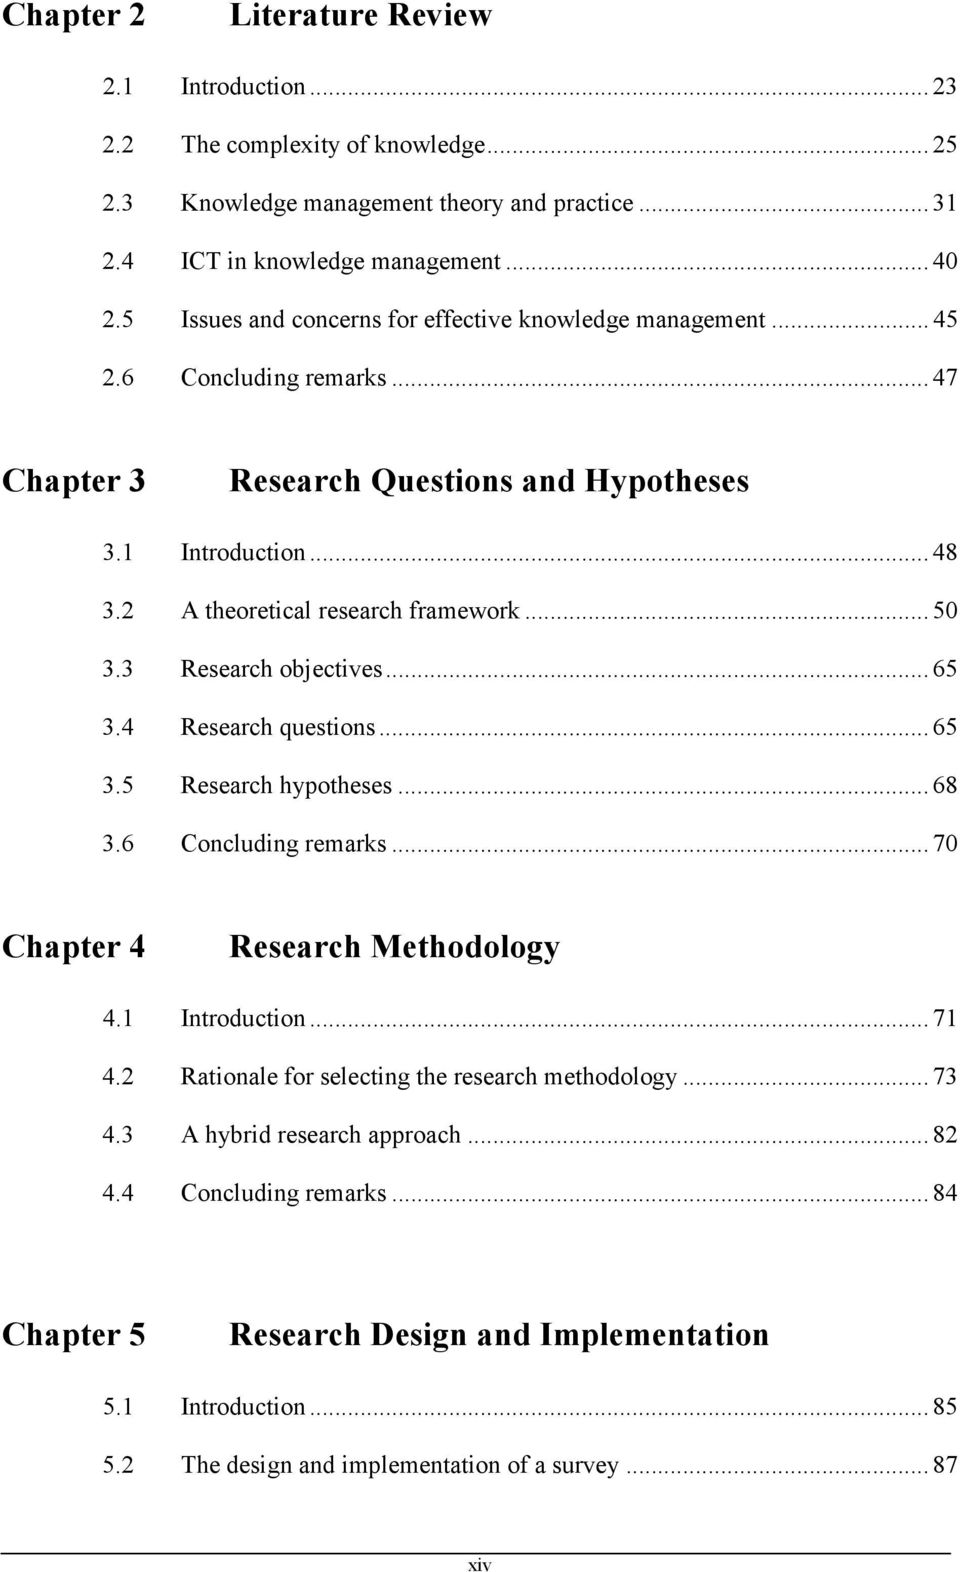 .. 50 3.3 Research objectives... 65 3.4 Research questions... 65 3.5 Research hypotheses... 68 3.6 Concluding remarks... 70 Chapter 4 Research Methodology 4.1 Introduction... 71 4.